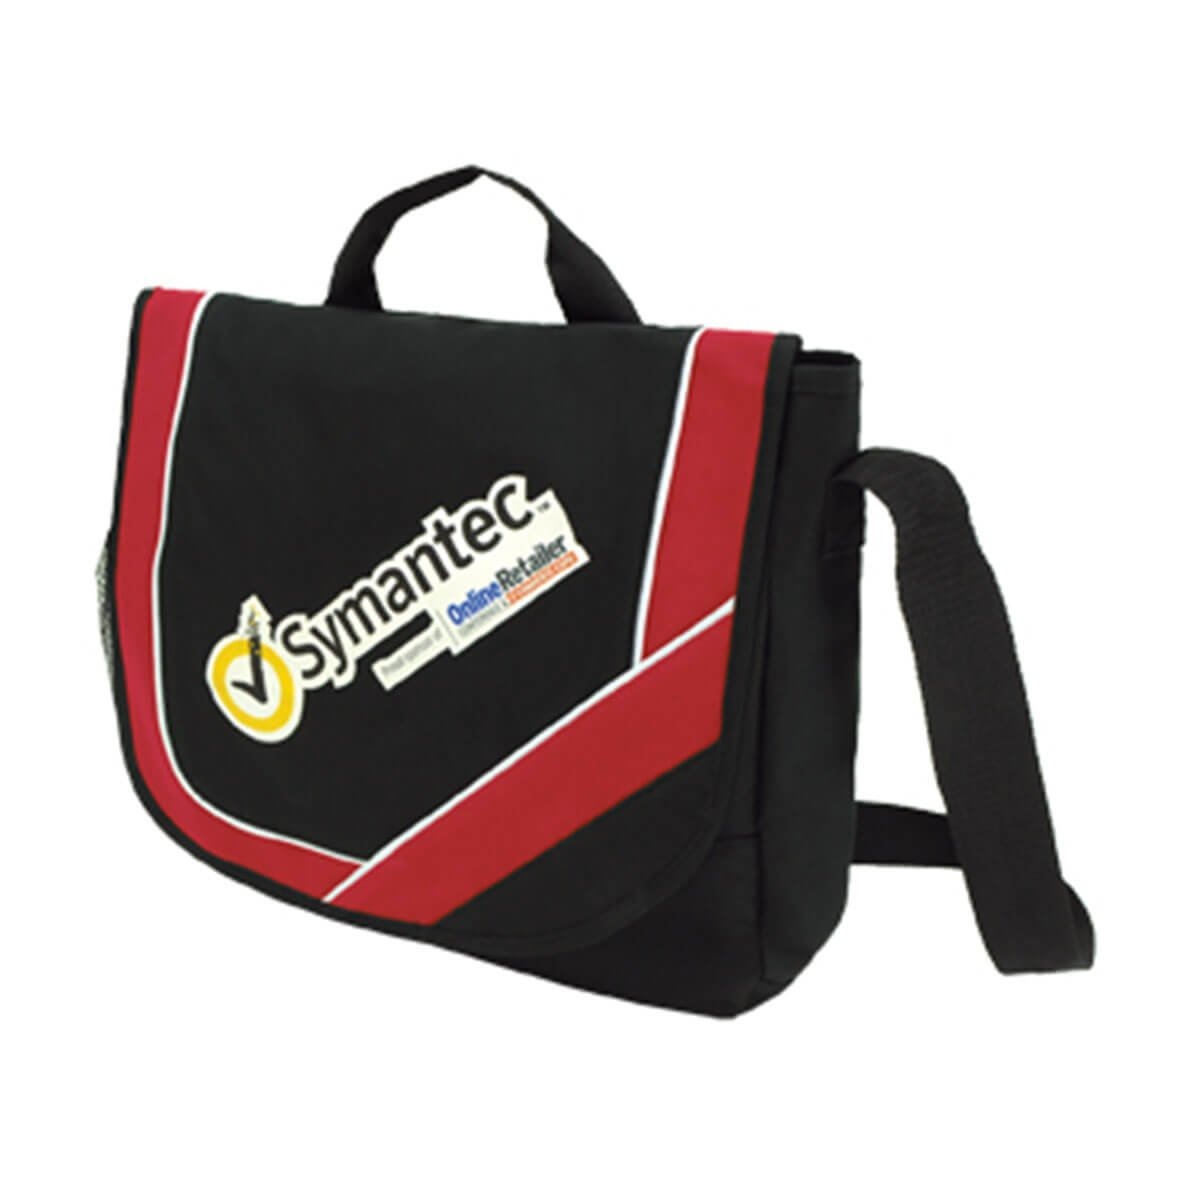 Calibre Conference Bag-Black / White / Red